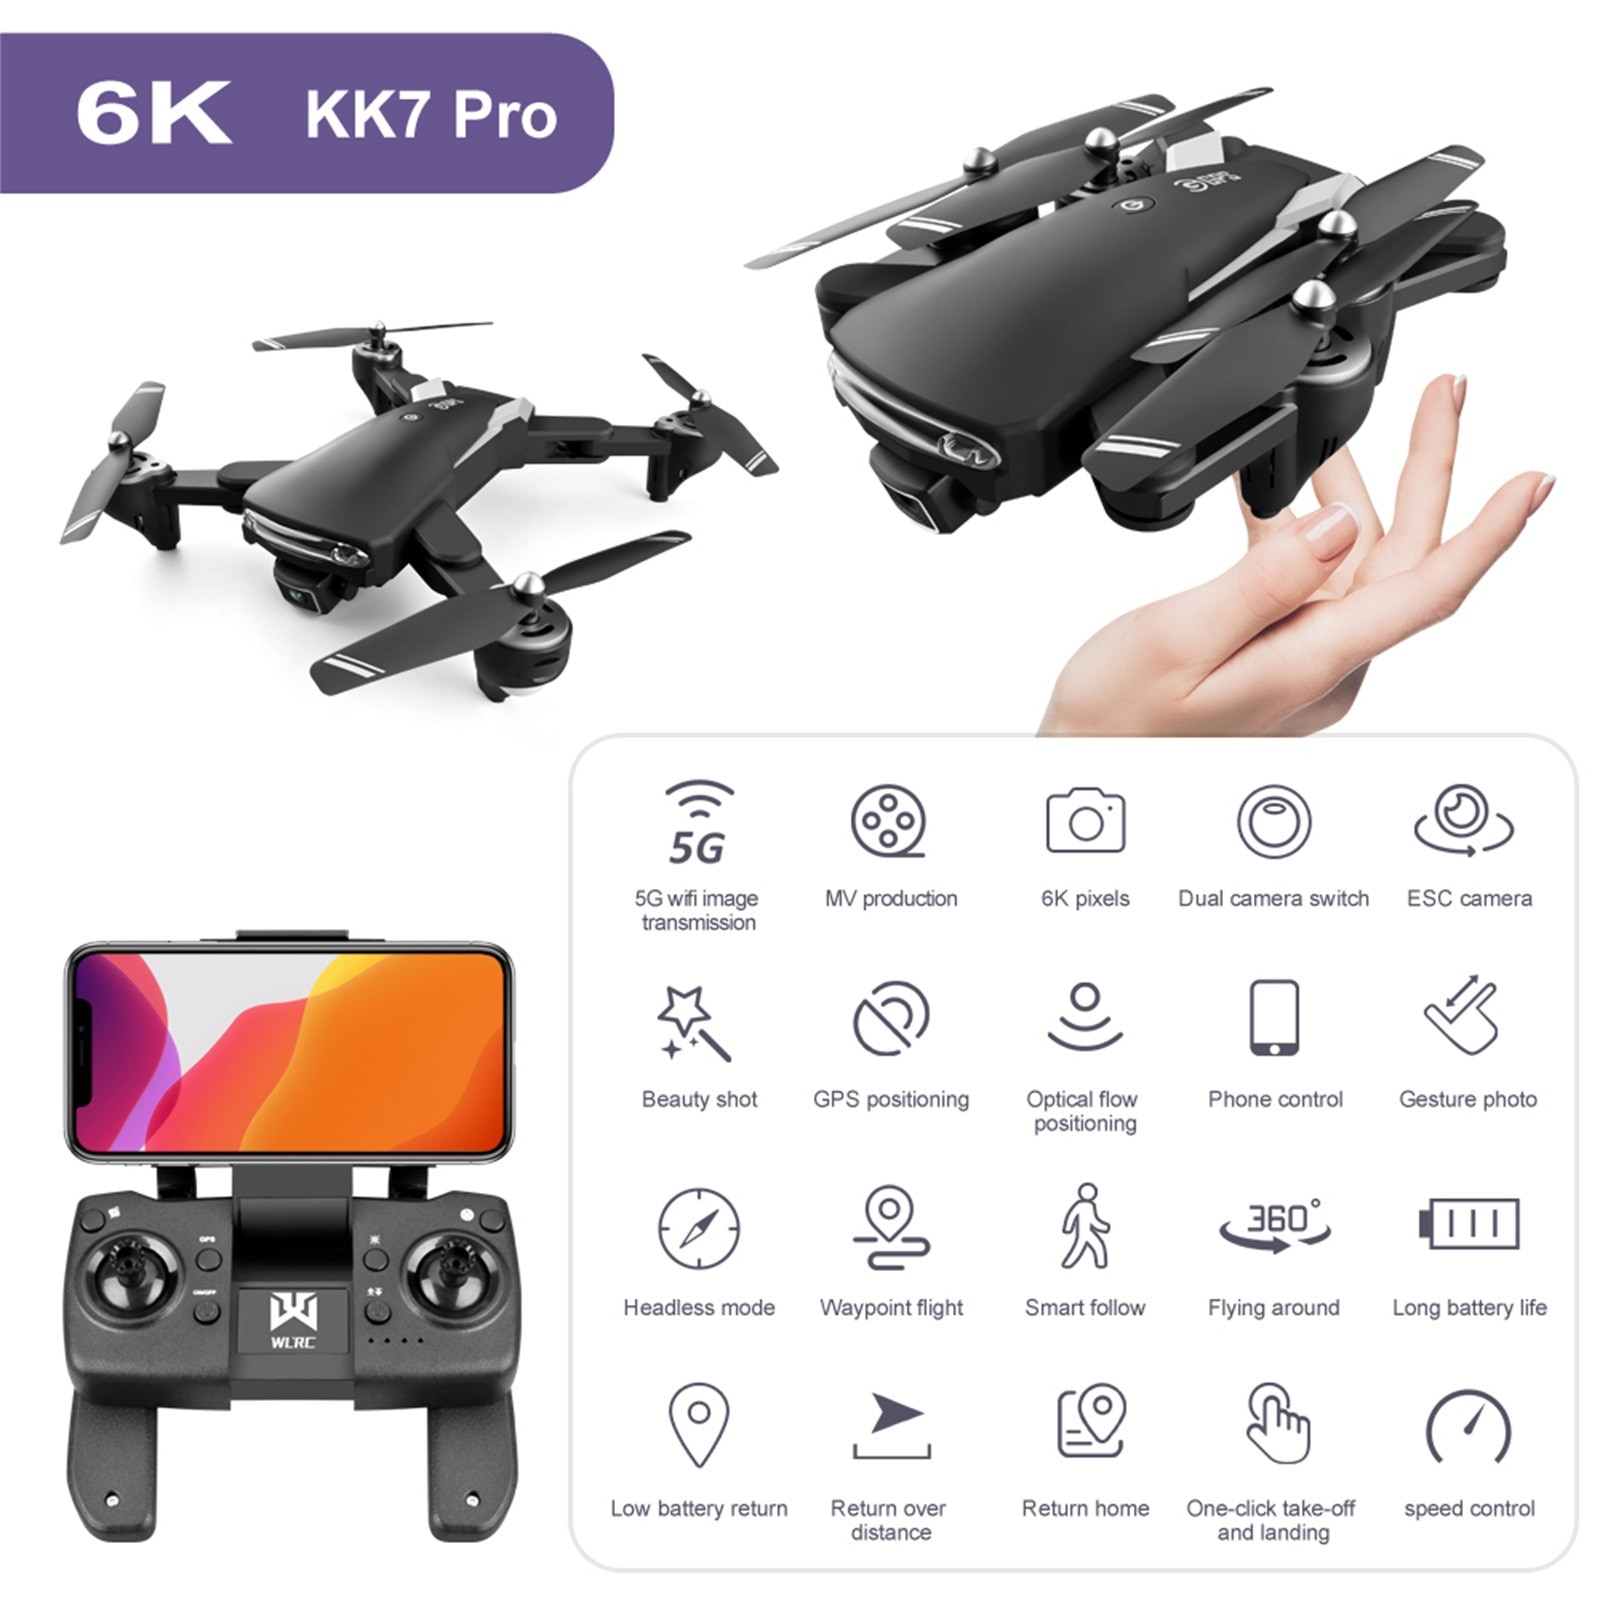 RC Drone Kk7 Pro Gps 6k Drone 5G Wifi Fpv With 6k Hd Camera Optical Flow Foldable 500m Control Distance RC Mini Quadcopter #F